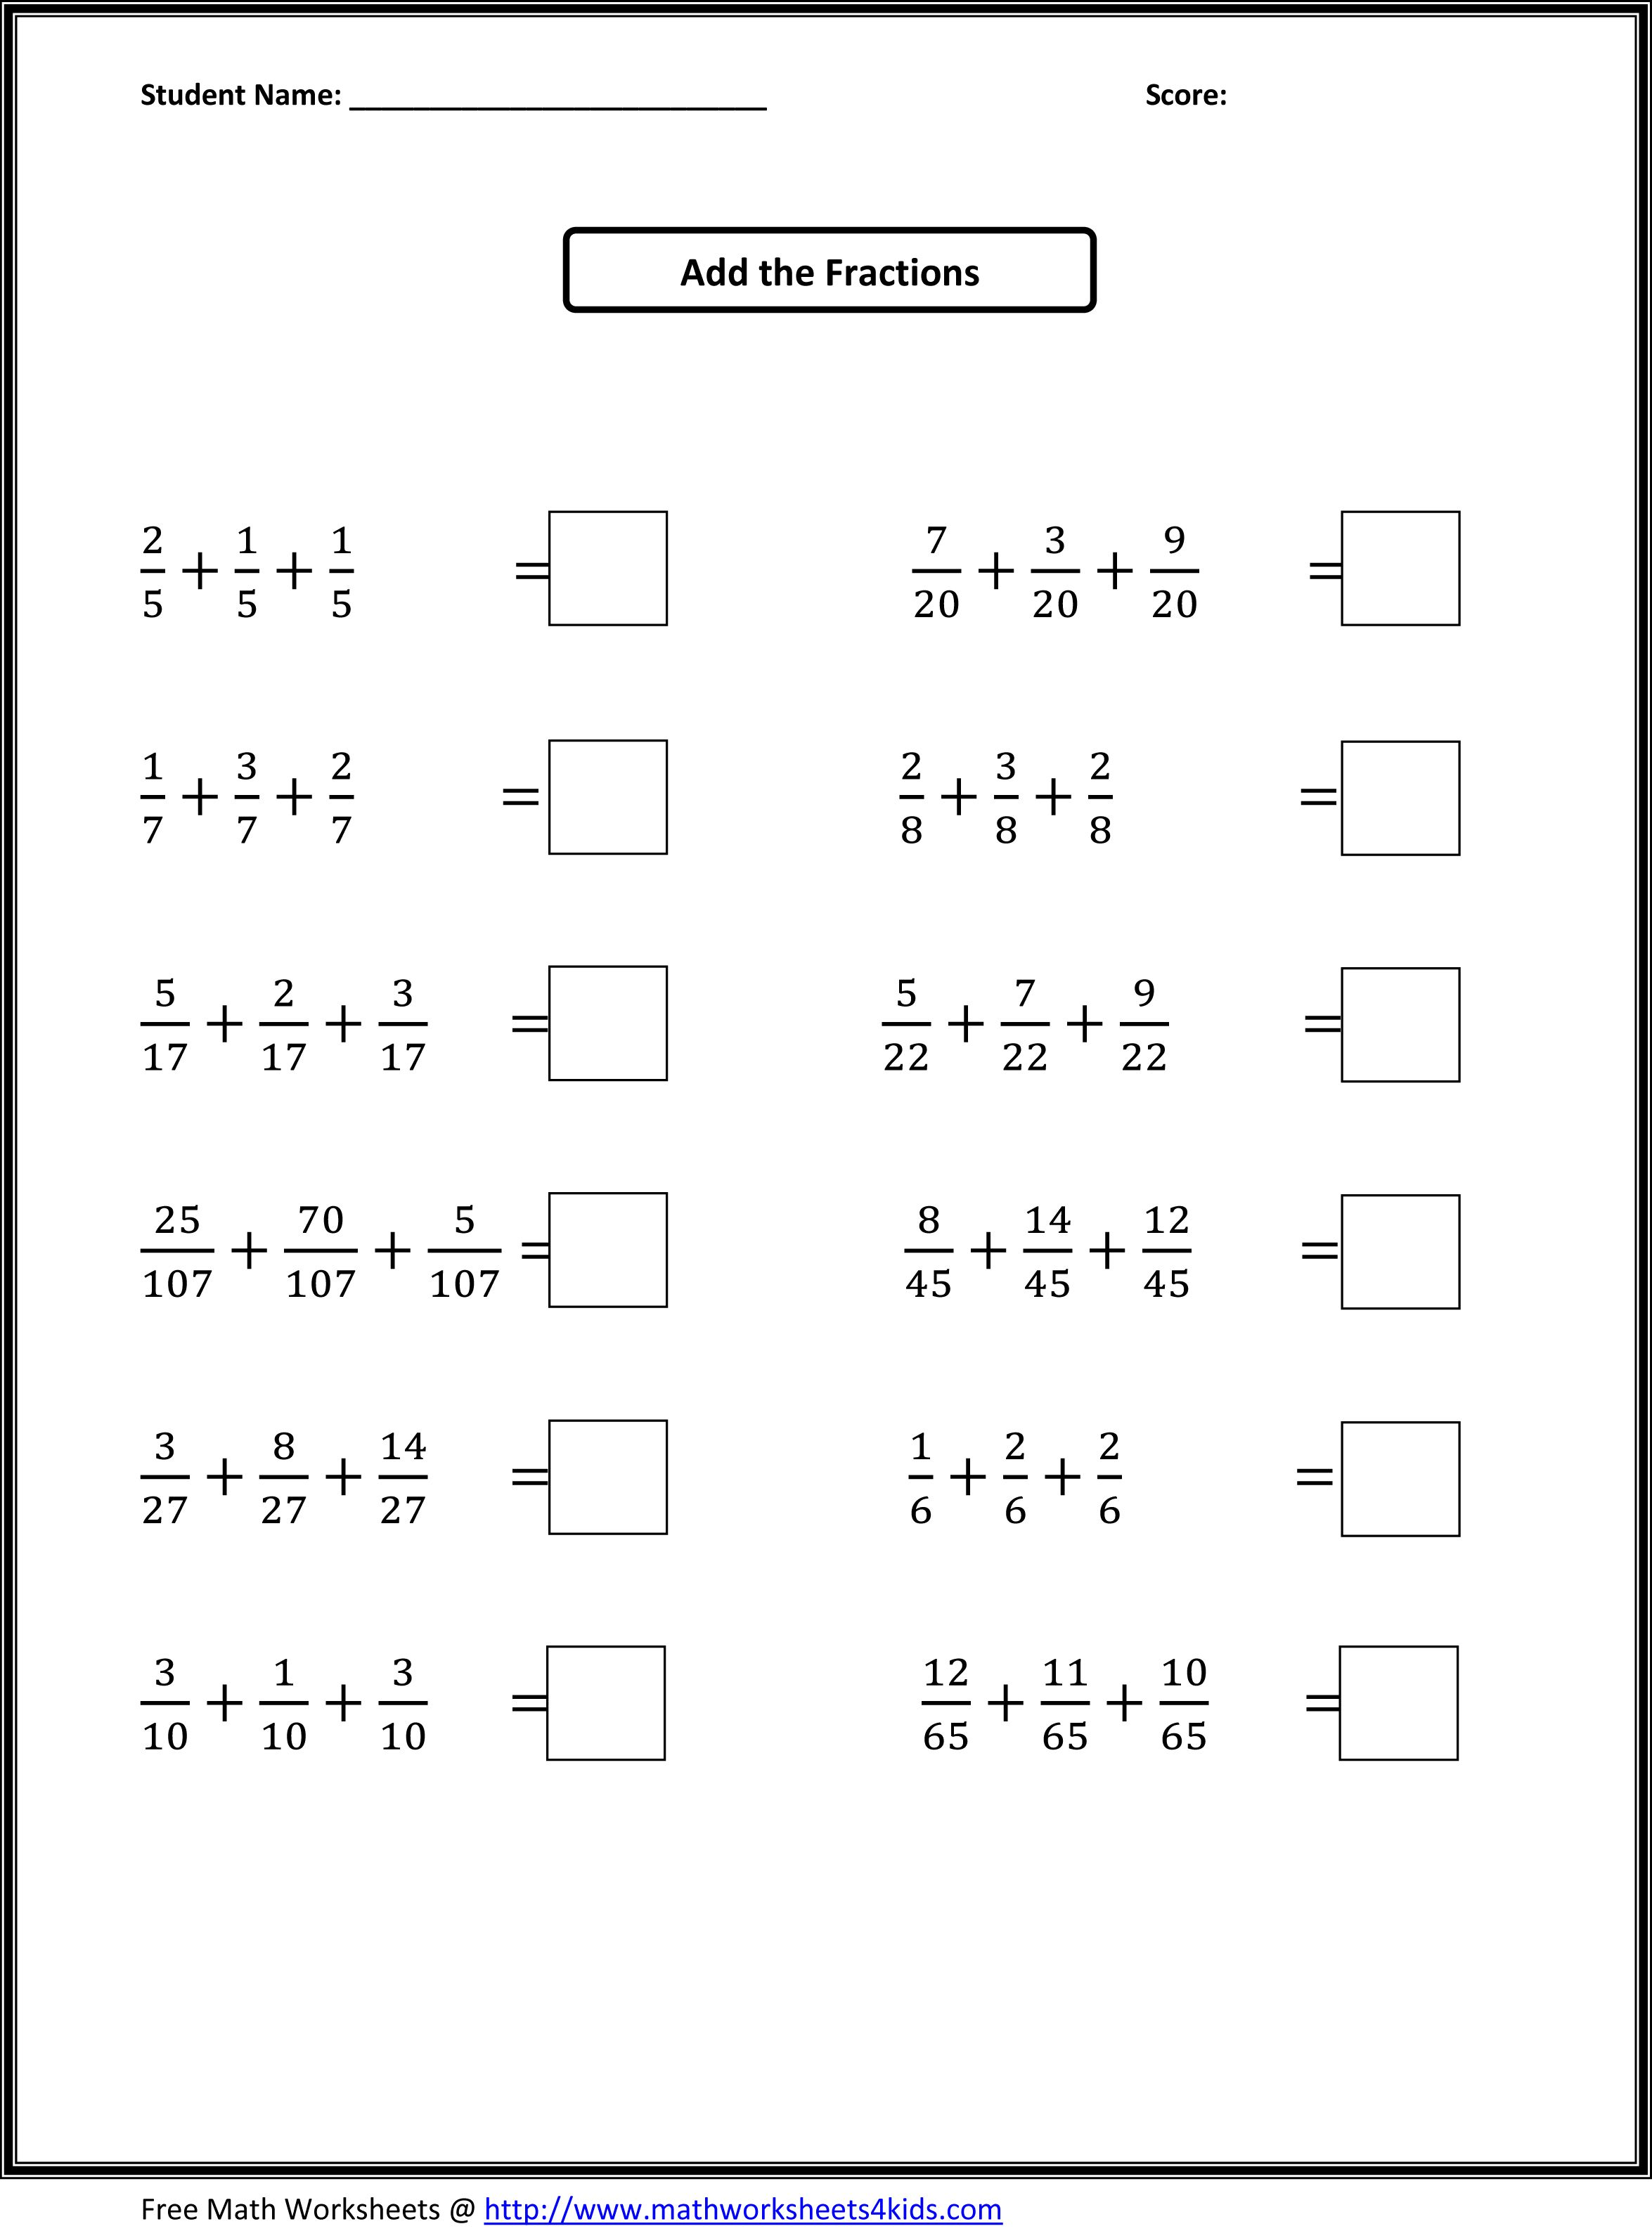 Worksheet Worksheets For 4th Graders 1000 images about math worksheets on pinterest 4th grade geometry and math